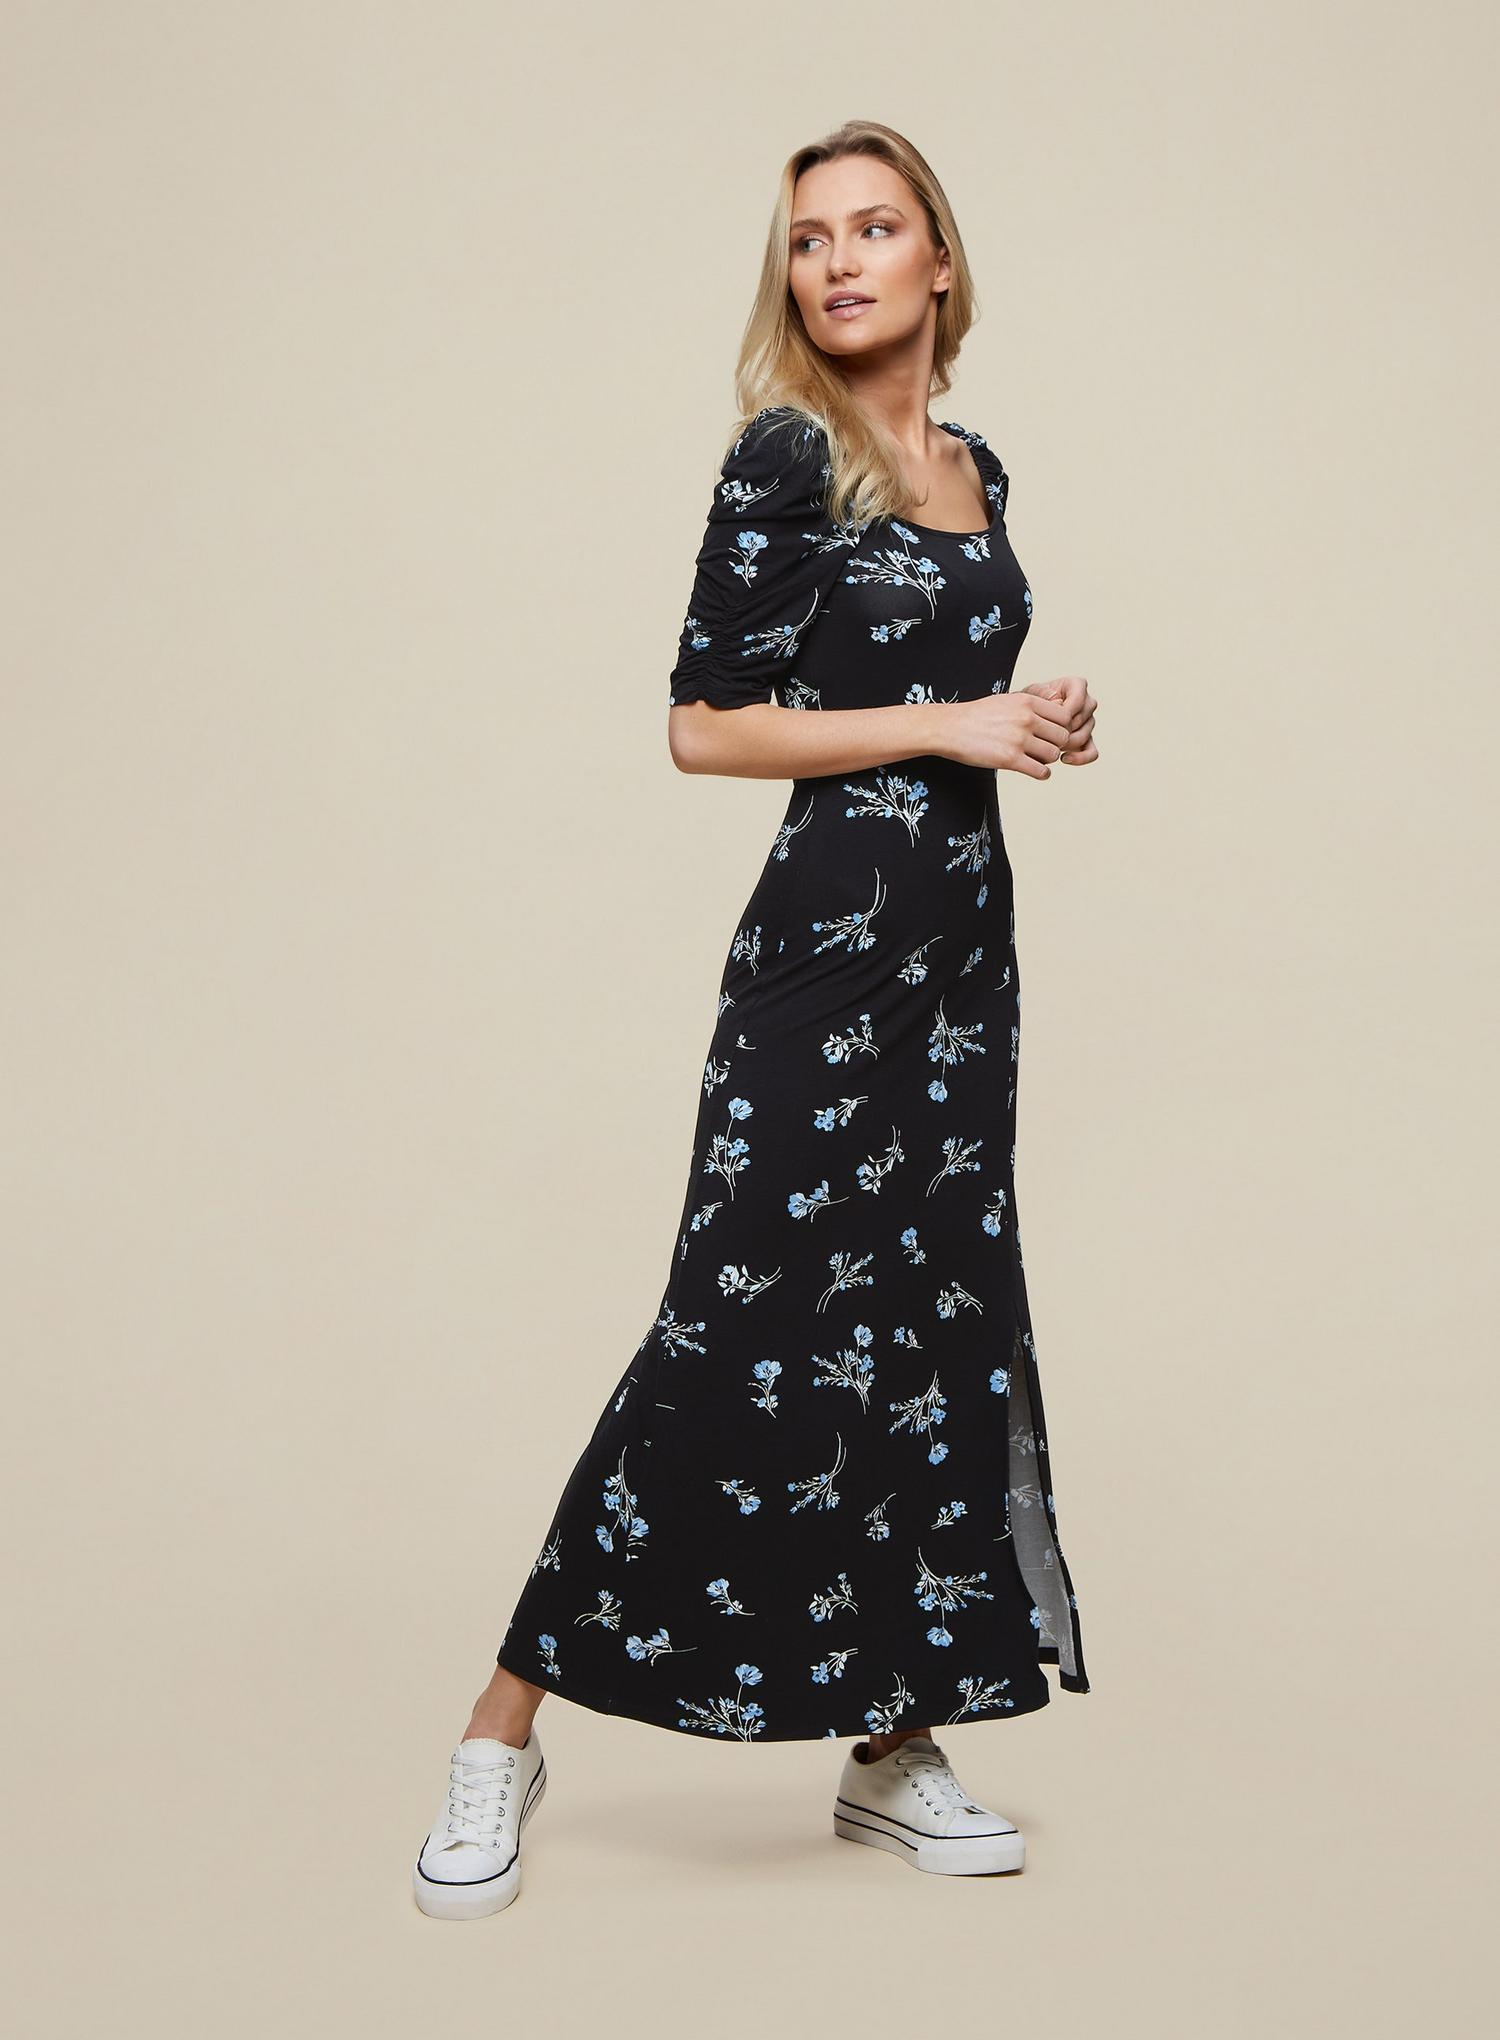 105 Black Floral Print Midi Dress image number 1